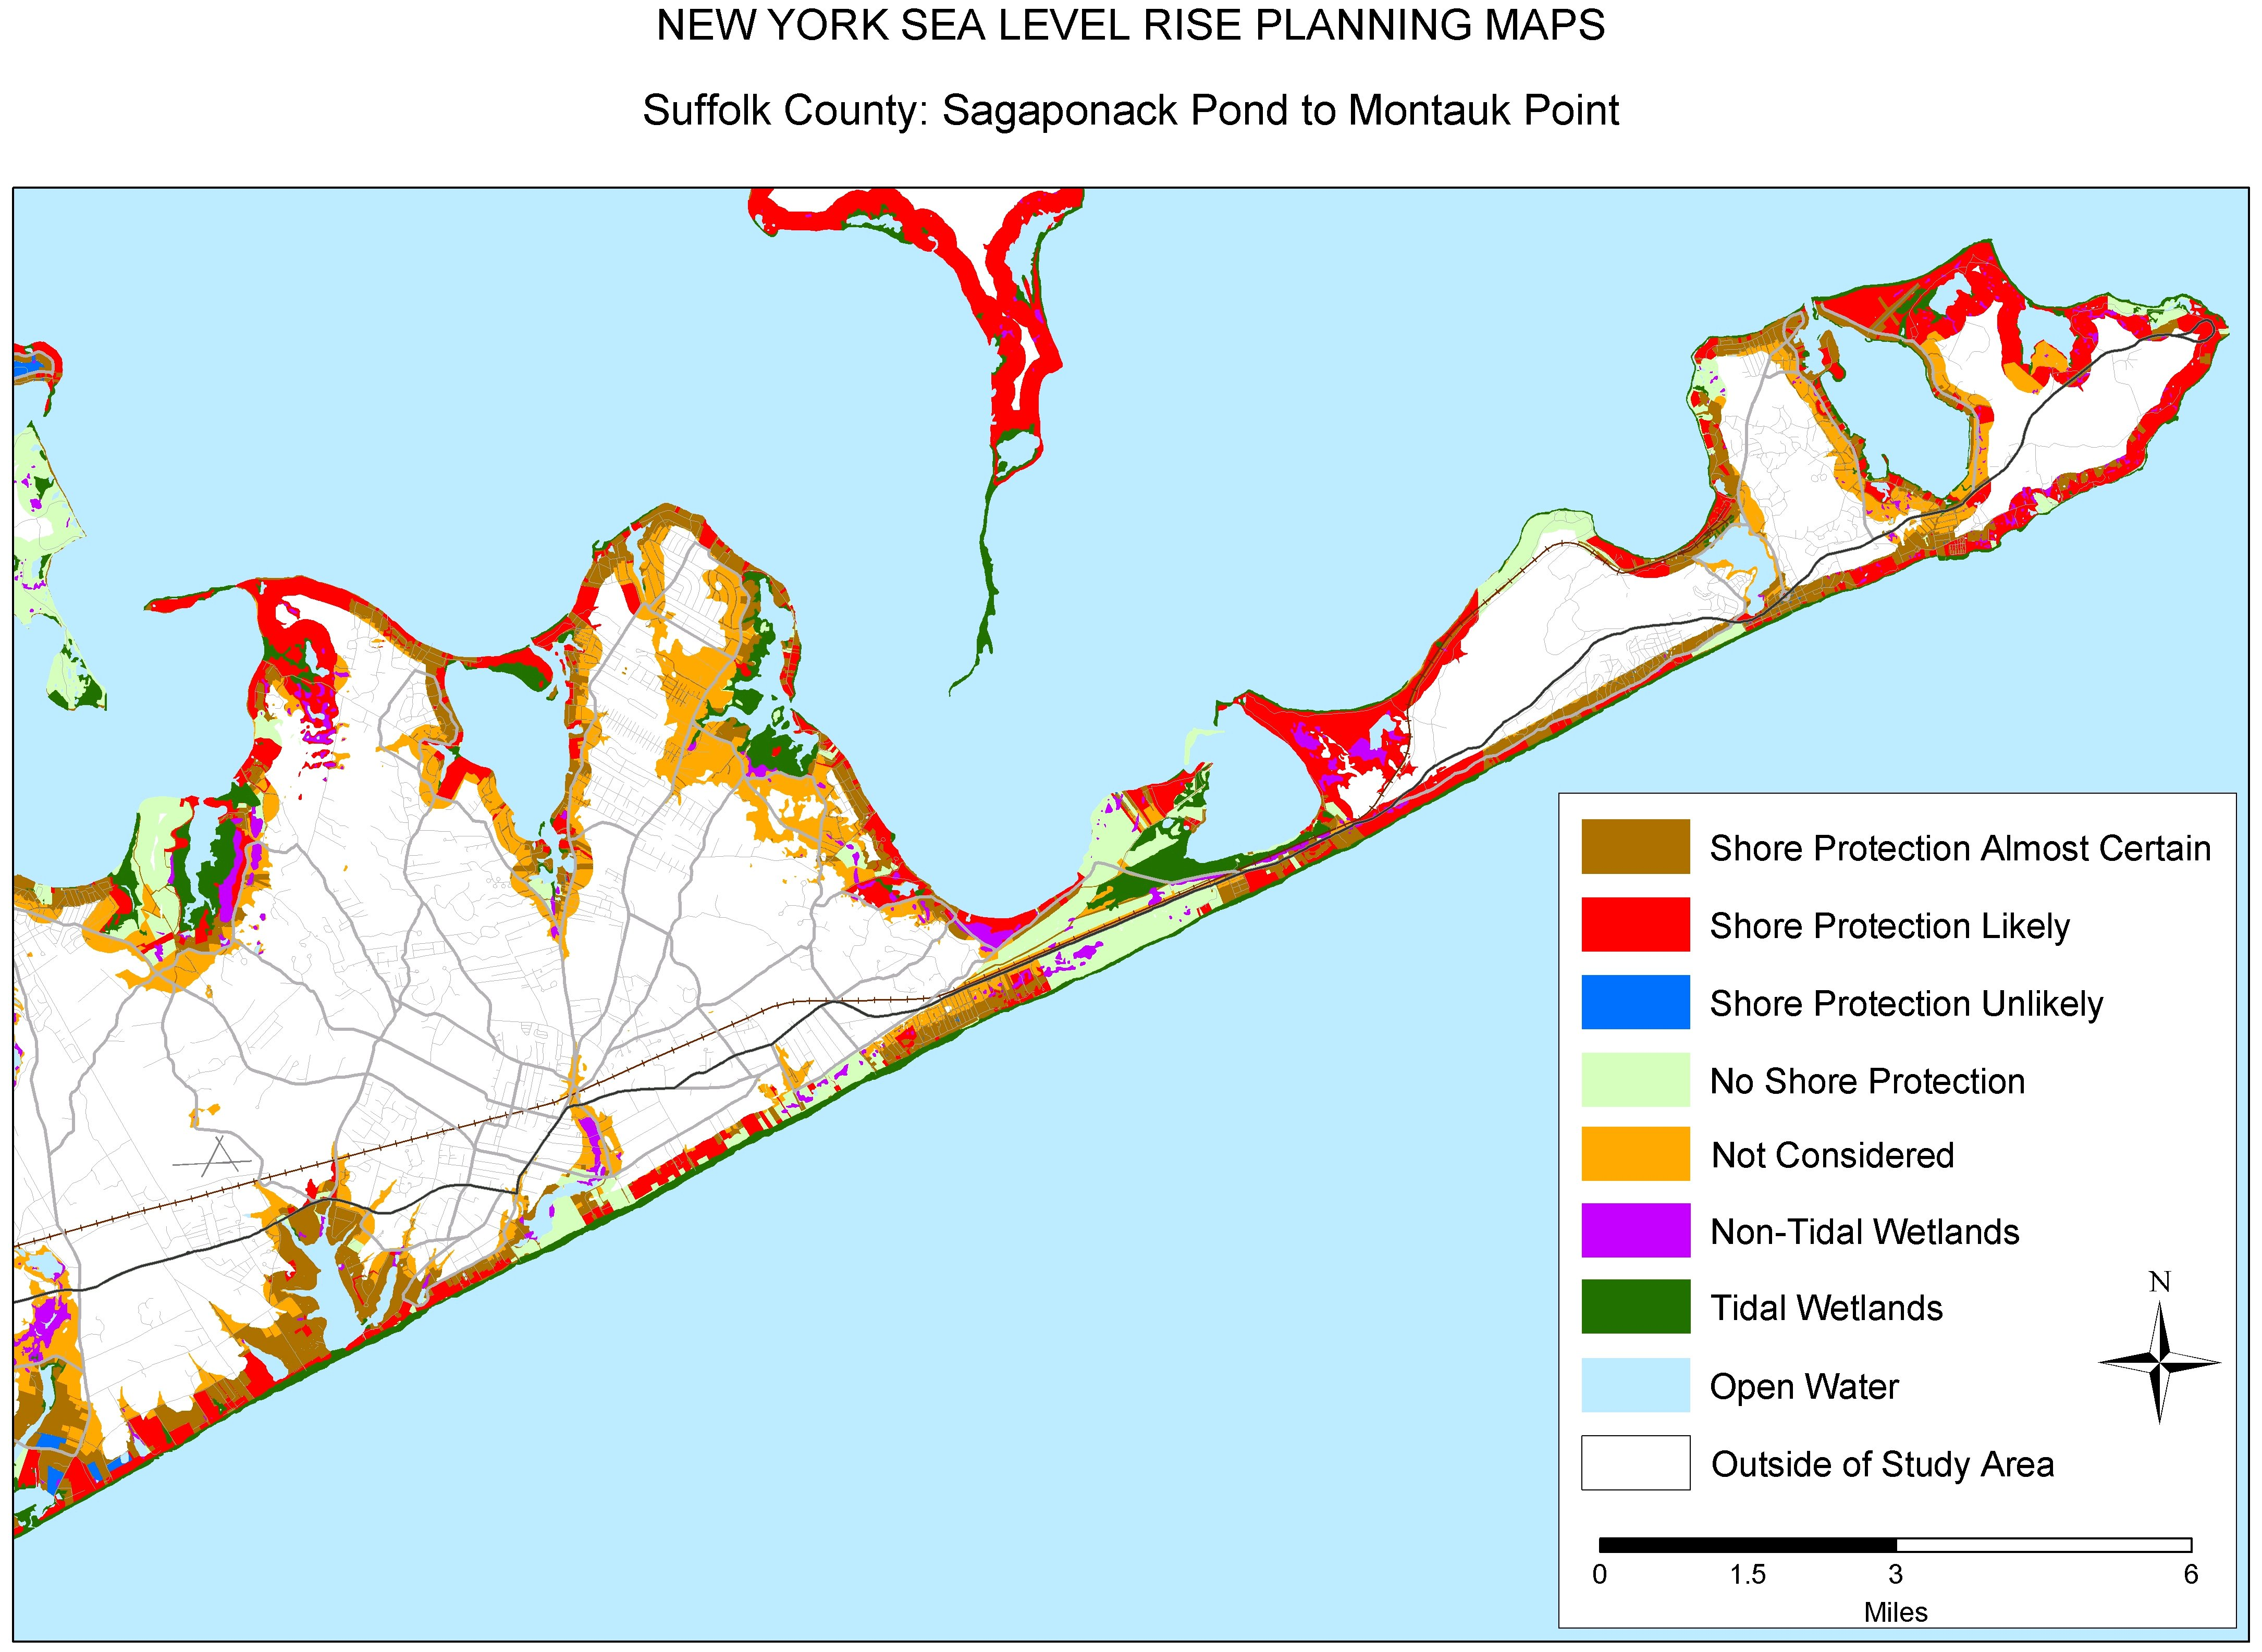 Suffolk County New York Map.Sea Level Rise Planning Maps Likelihood Of Shore Protection